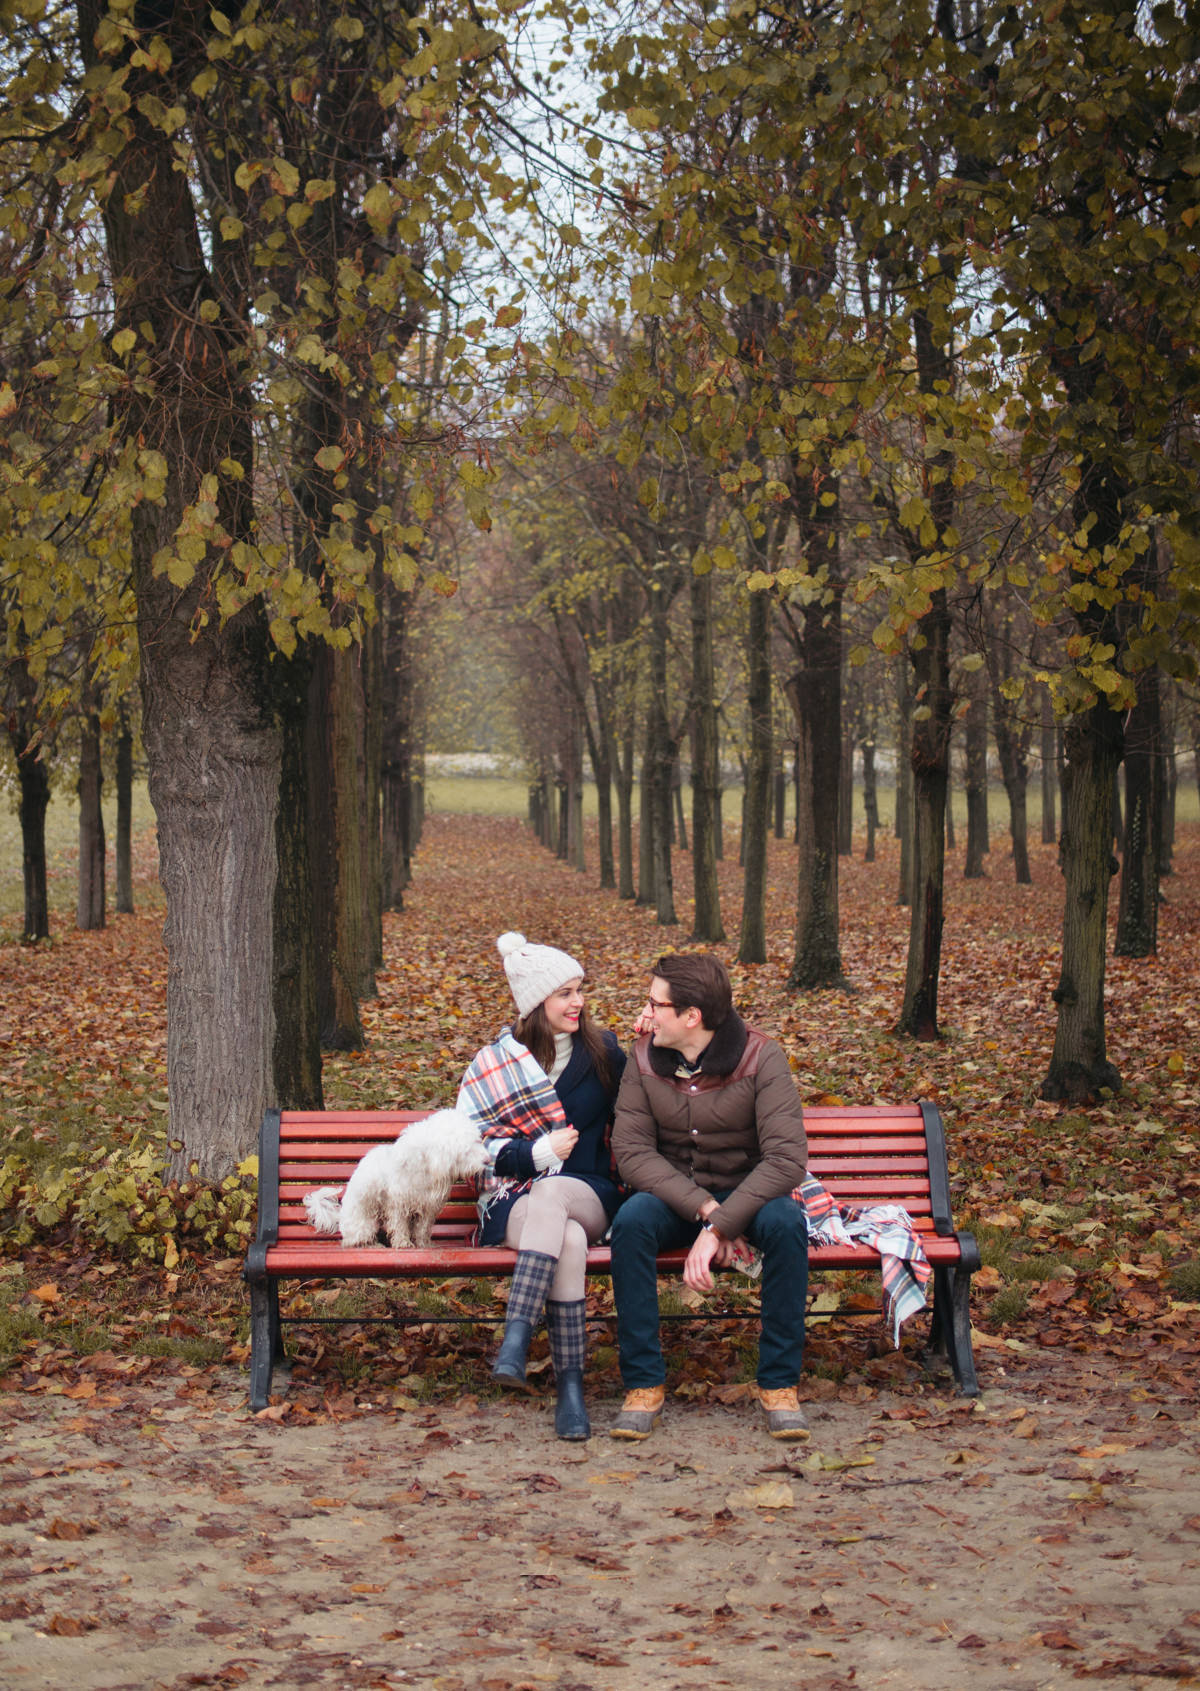 Blog-Mode-And-The-City-Balade-En-Foret